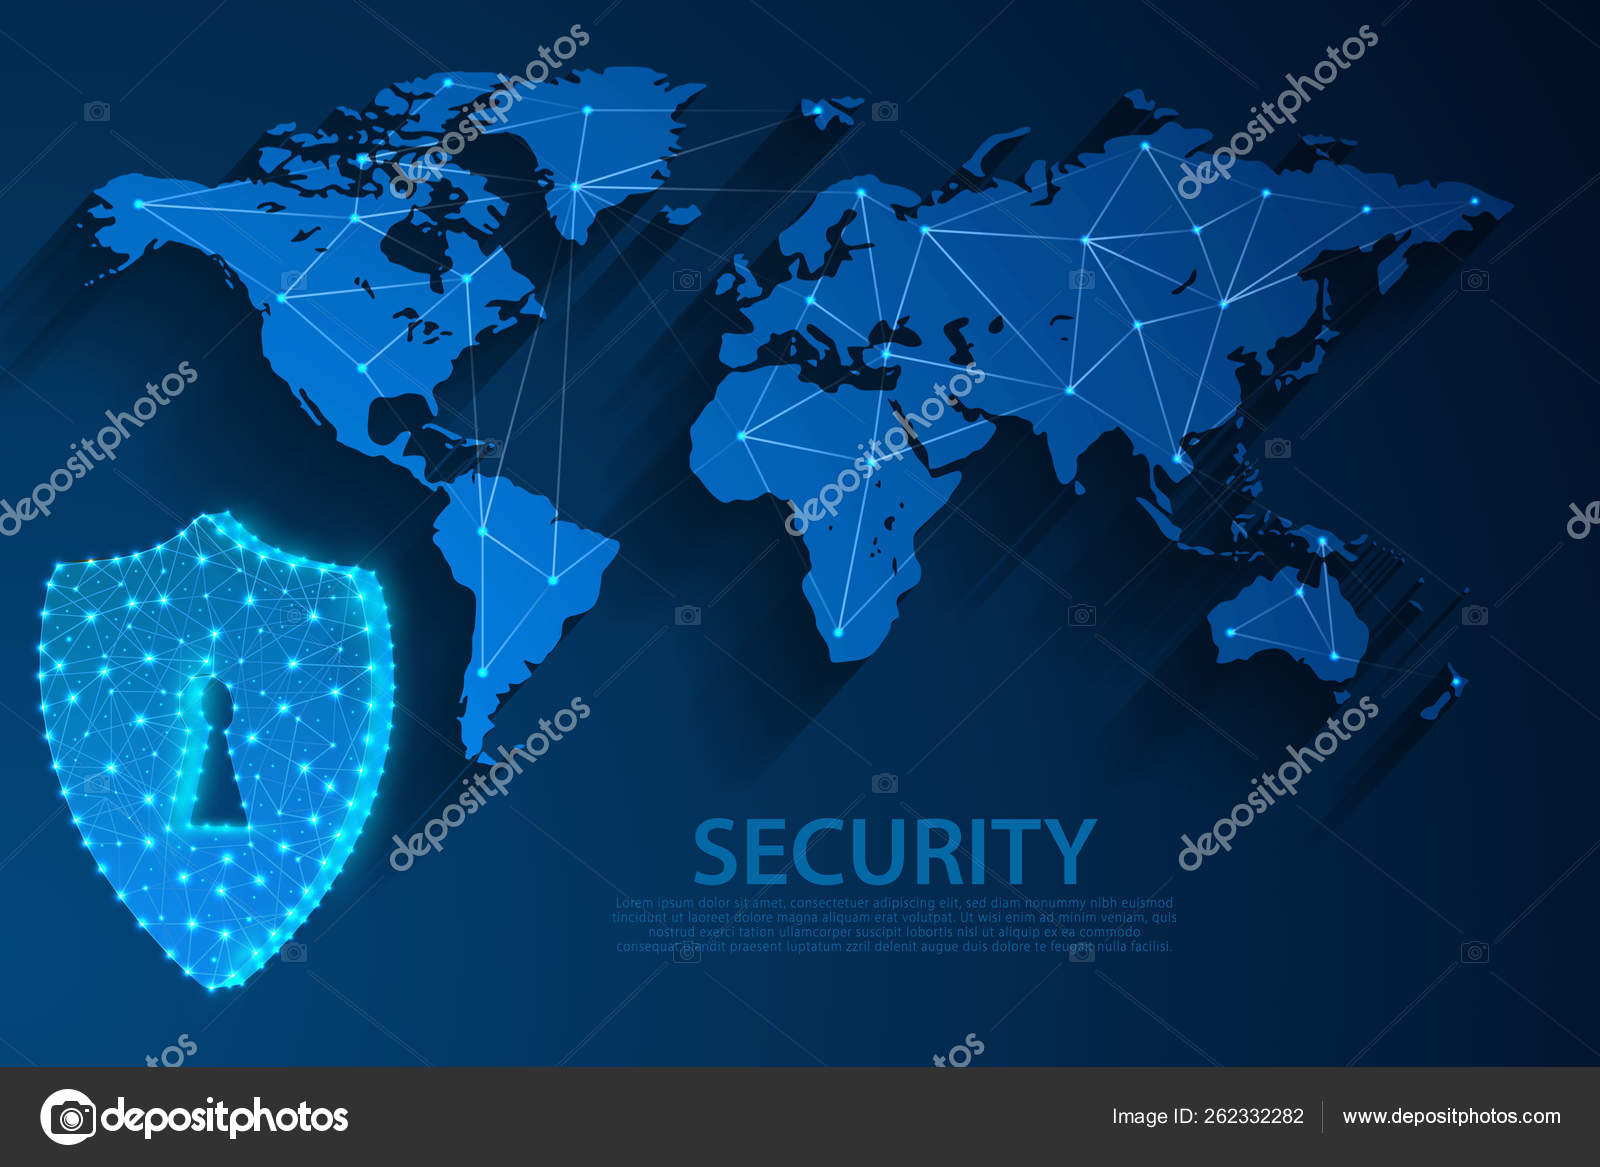 Security icon and network technology blue background with ... on world map terrain, simple world map vector, world map outline vector, world map with symbols, world globe vector, world map social media icons, world map silhouette vector, world map to color, usa map icon vector, world map vector art, flat world map vector, world map vector ai, world icon no background, vintage map clip art vector, world map infographic element, us map vector, world map background vector, world map outline eps, world map clip art,